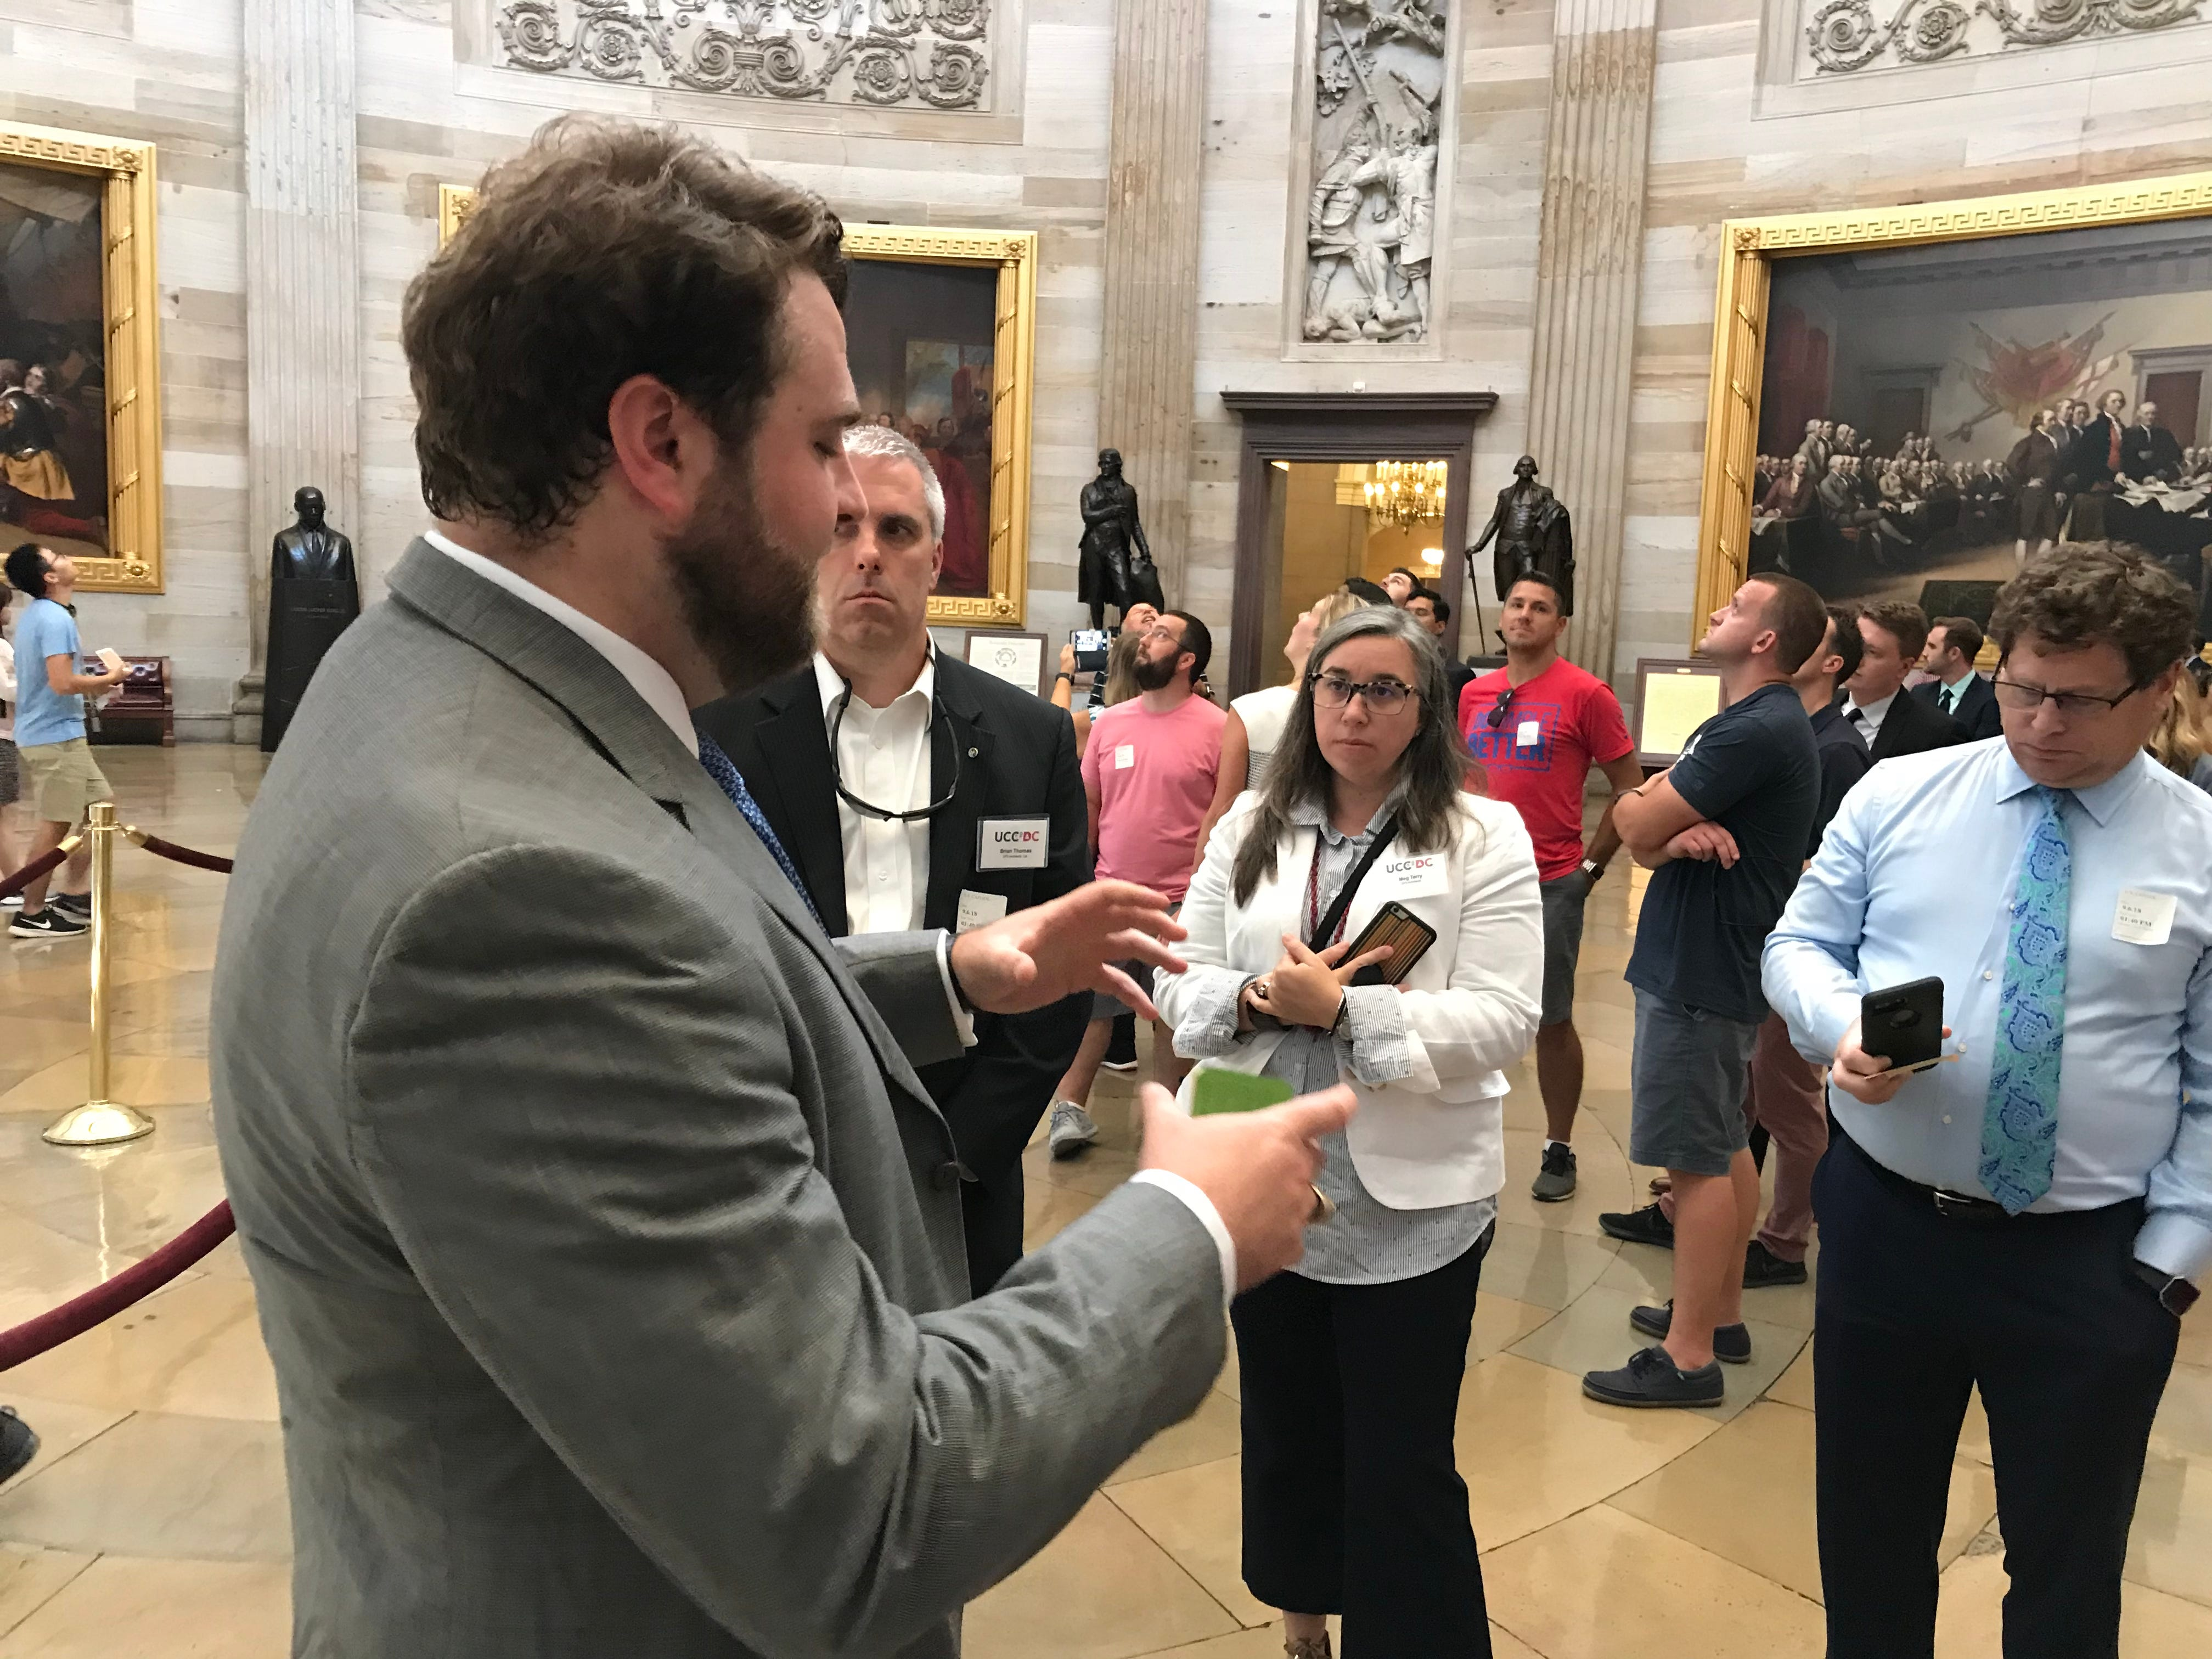 Clayton Chester, a legislative assistant for Rep. Trey Gowdy, explains the Frieze of American History in the rotunda of the U.S. Capitol during a tour for members of the Upstate Chamber Coalition on Thursday, Sept. 6, 2018.